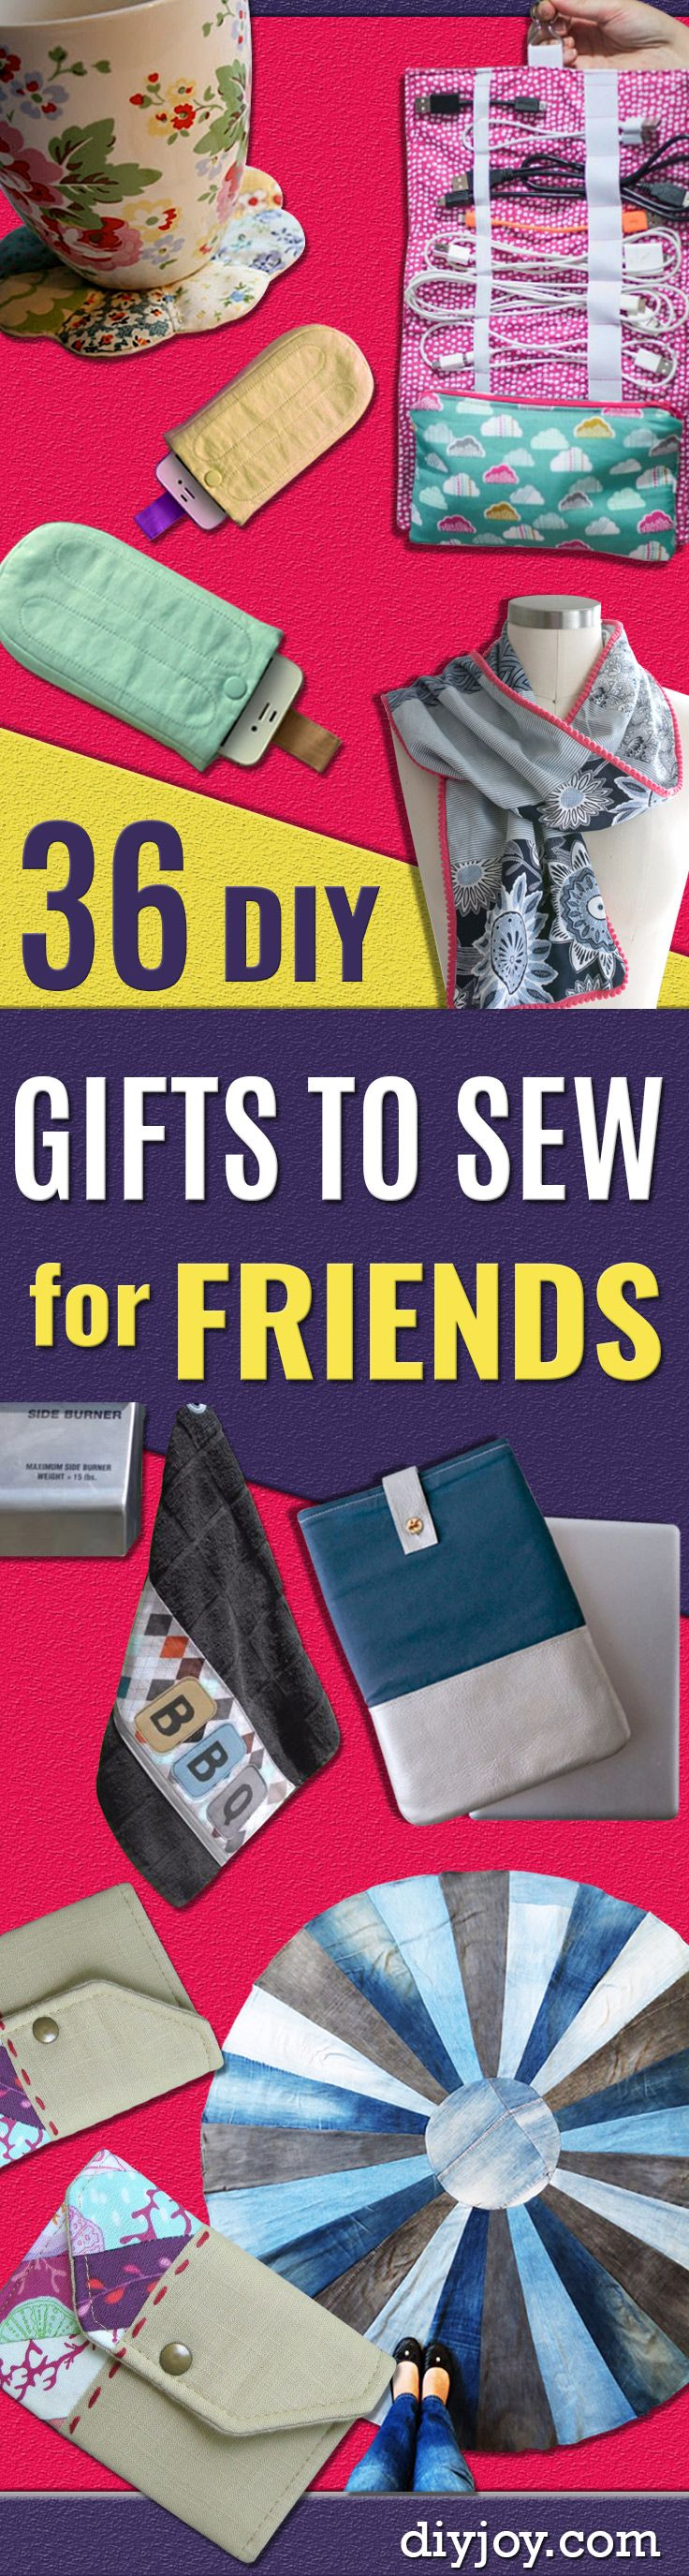 DIY Gifts To Sew For Friends – Quick and Easy Sewing Projects and Free Patterns for Best Gift Ideas and Presents – Creative Step